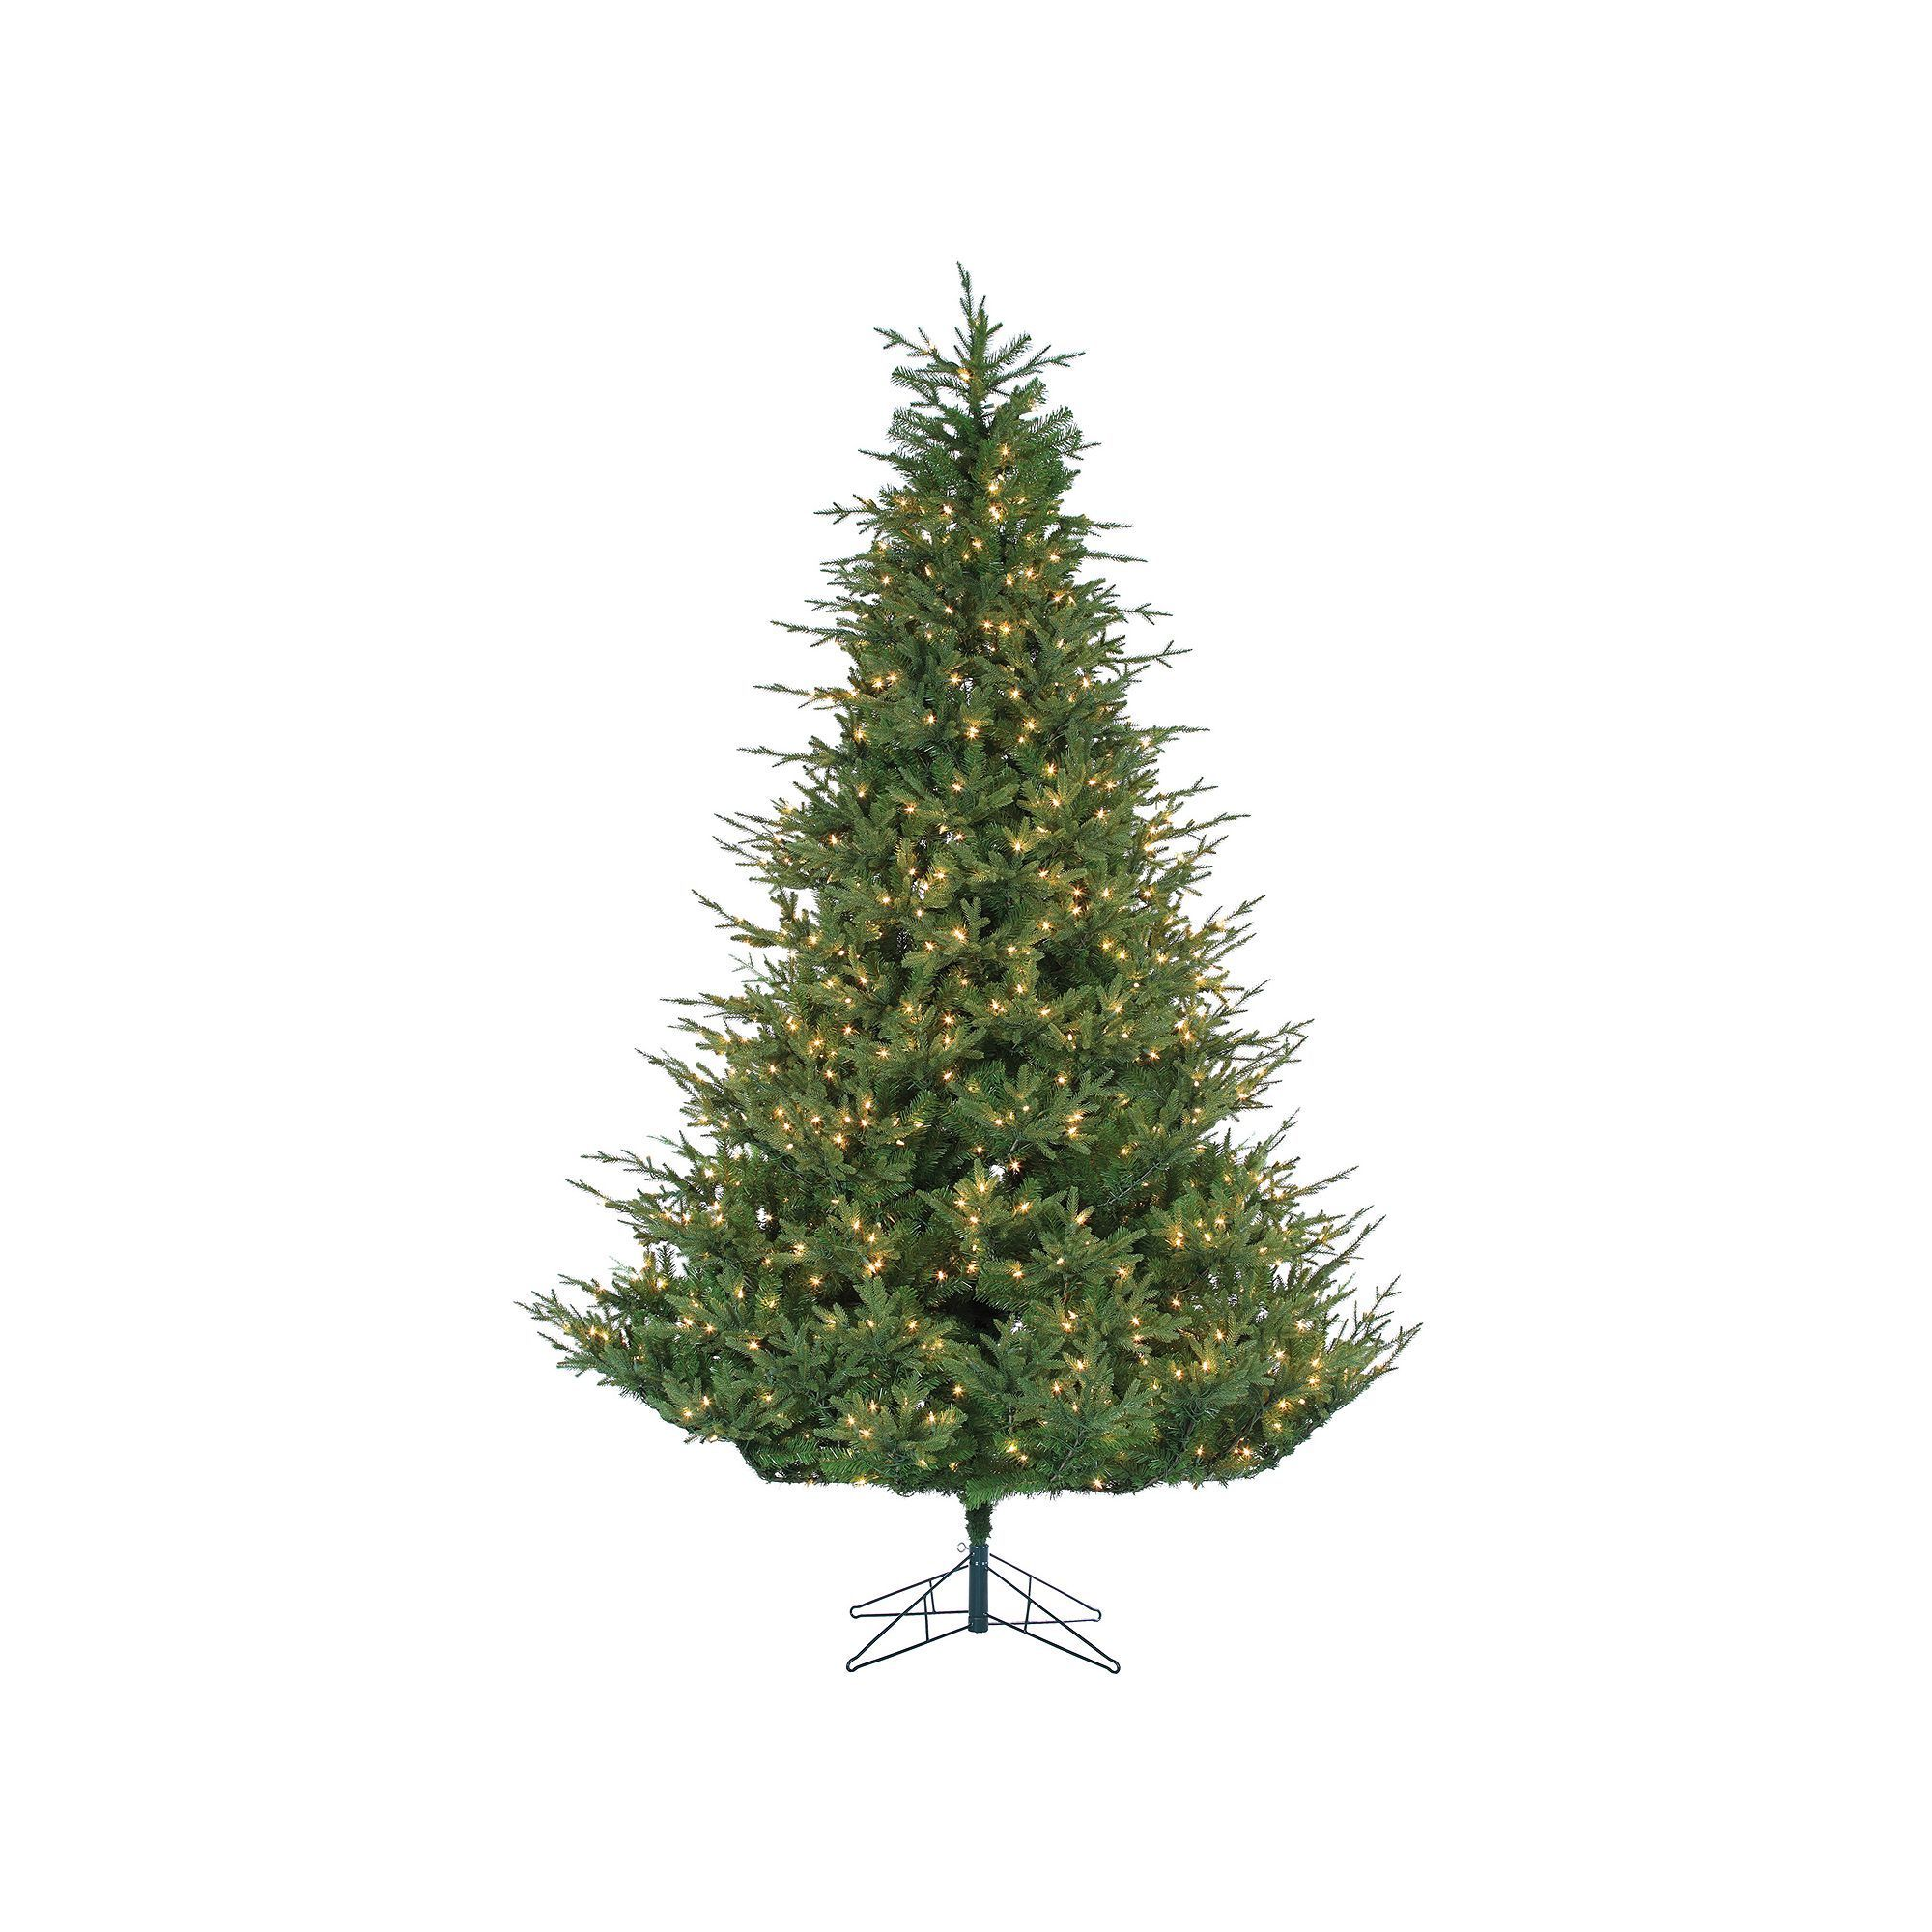 sterling 9 natural cut upswept chesterfield spruce artificial christmas tree - Sterling Christmas Trees